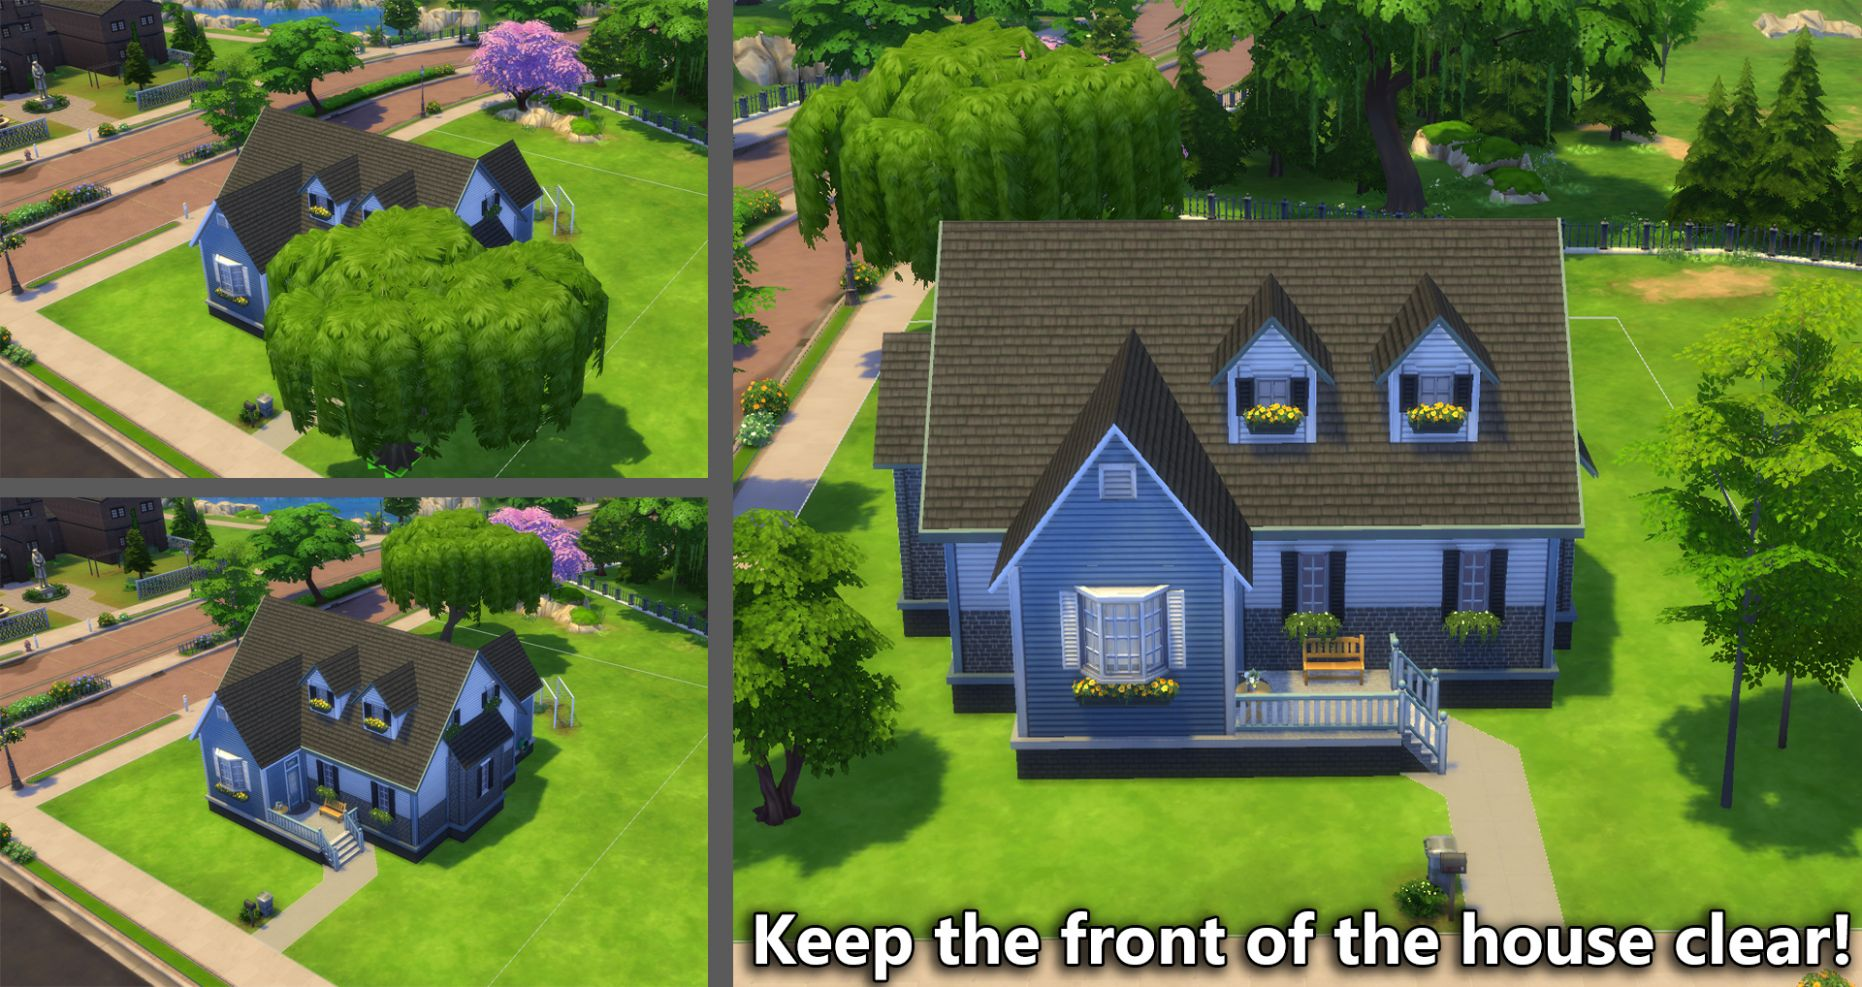 Building for Beginners in The Sims 12 (Landscaping)